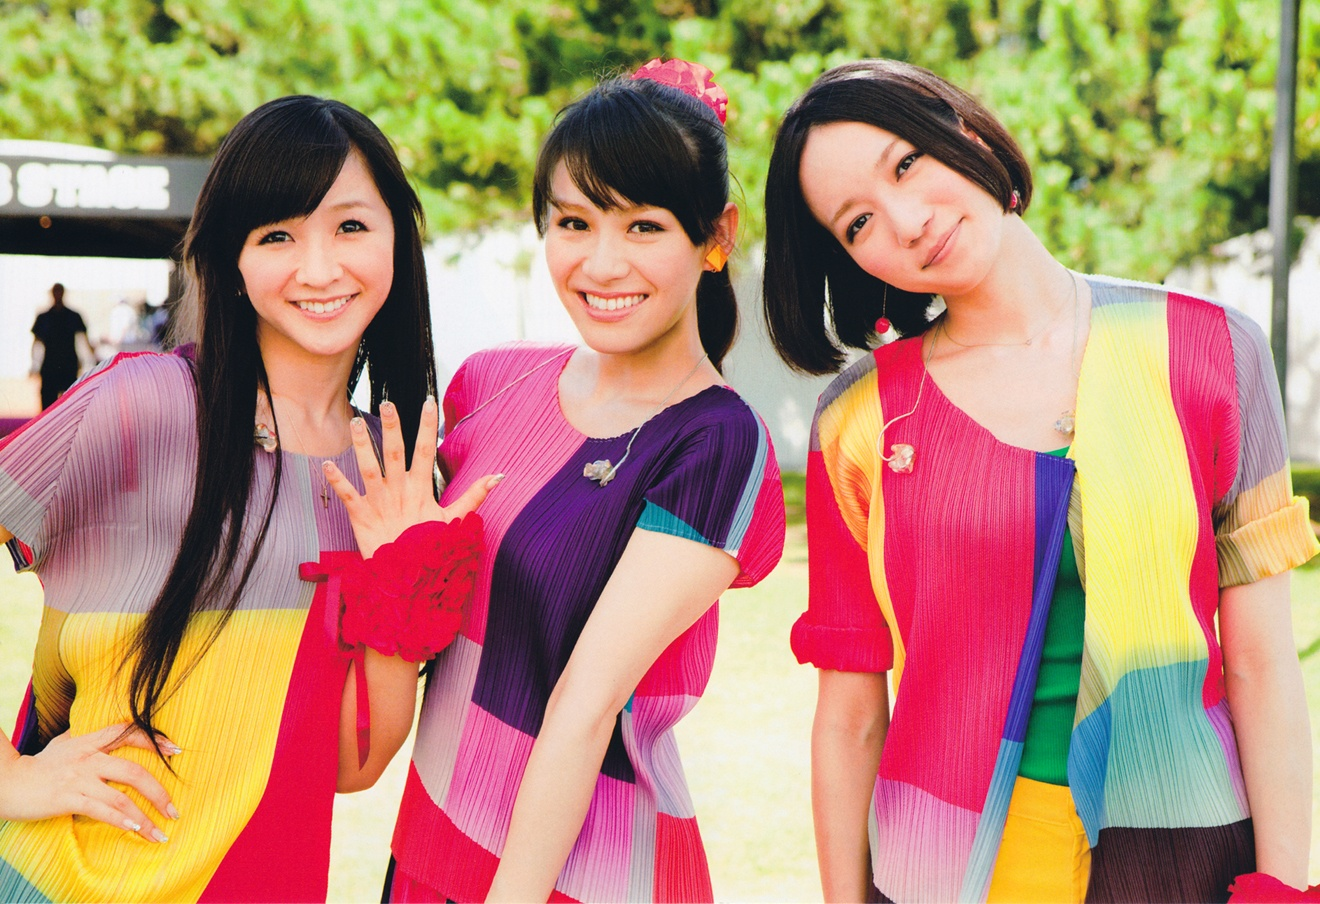 Perfume (Group) Wallpaper #1756 - Asiachan KPOP Image Board